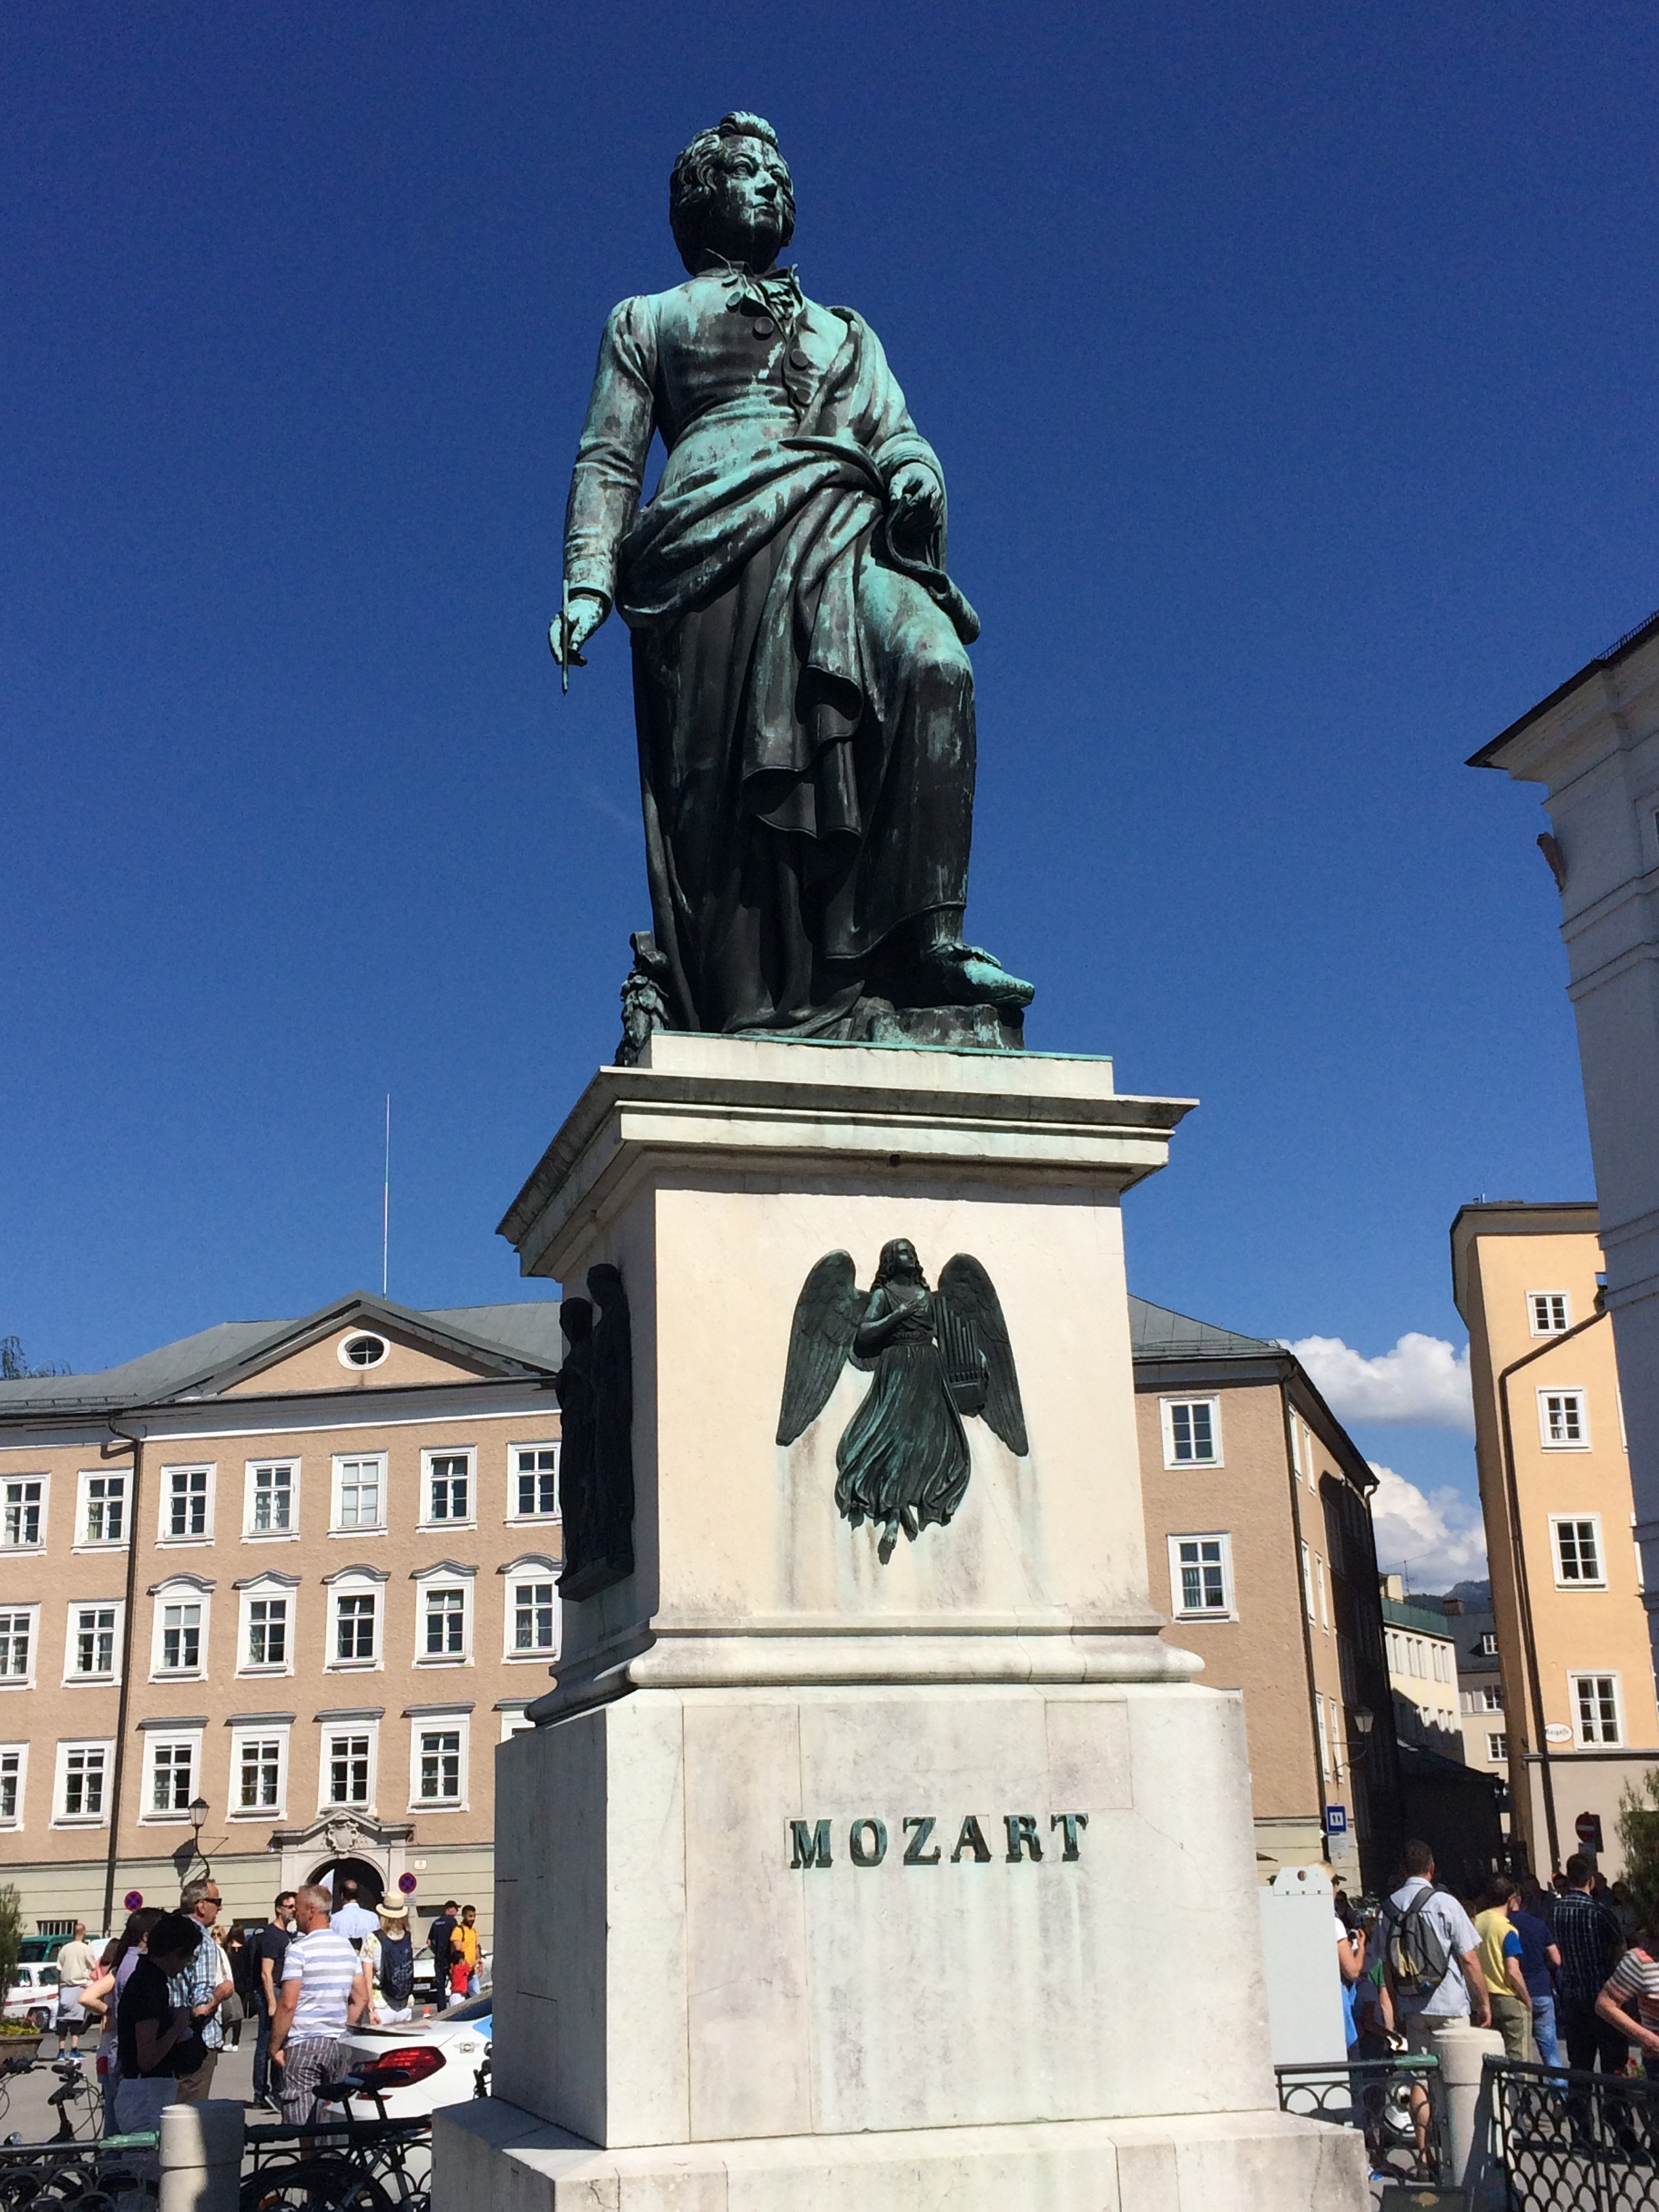 Famed son of Salzburg